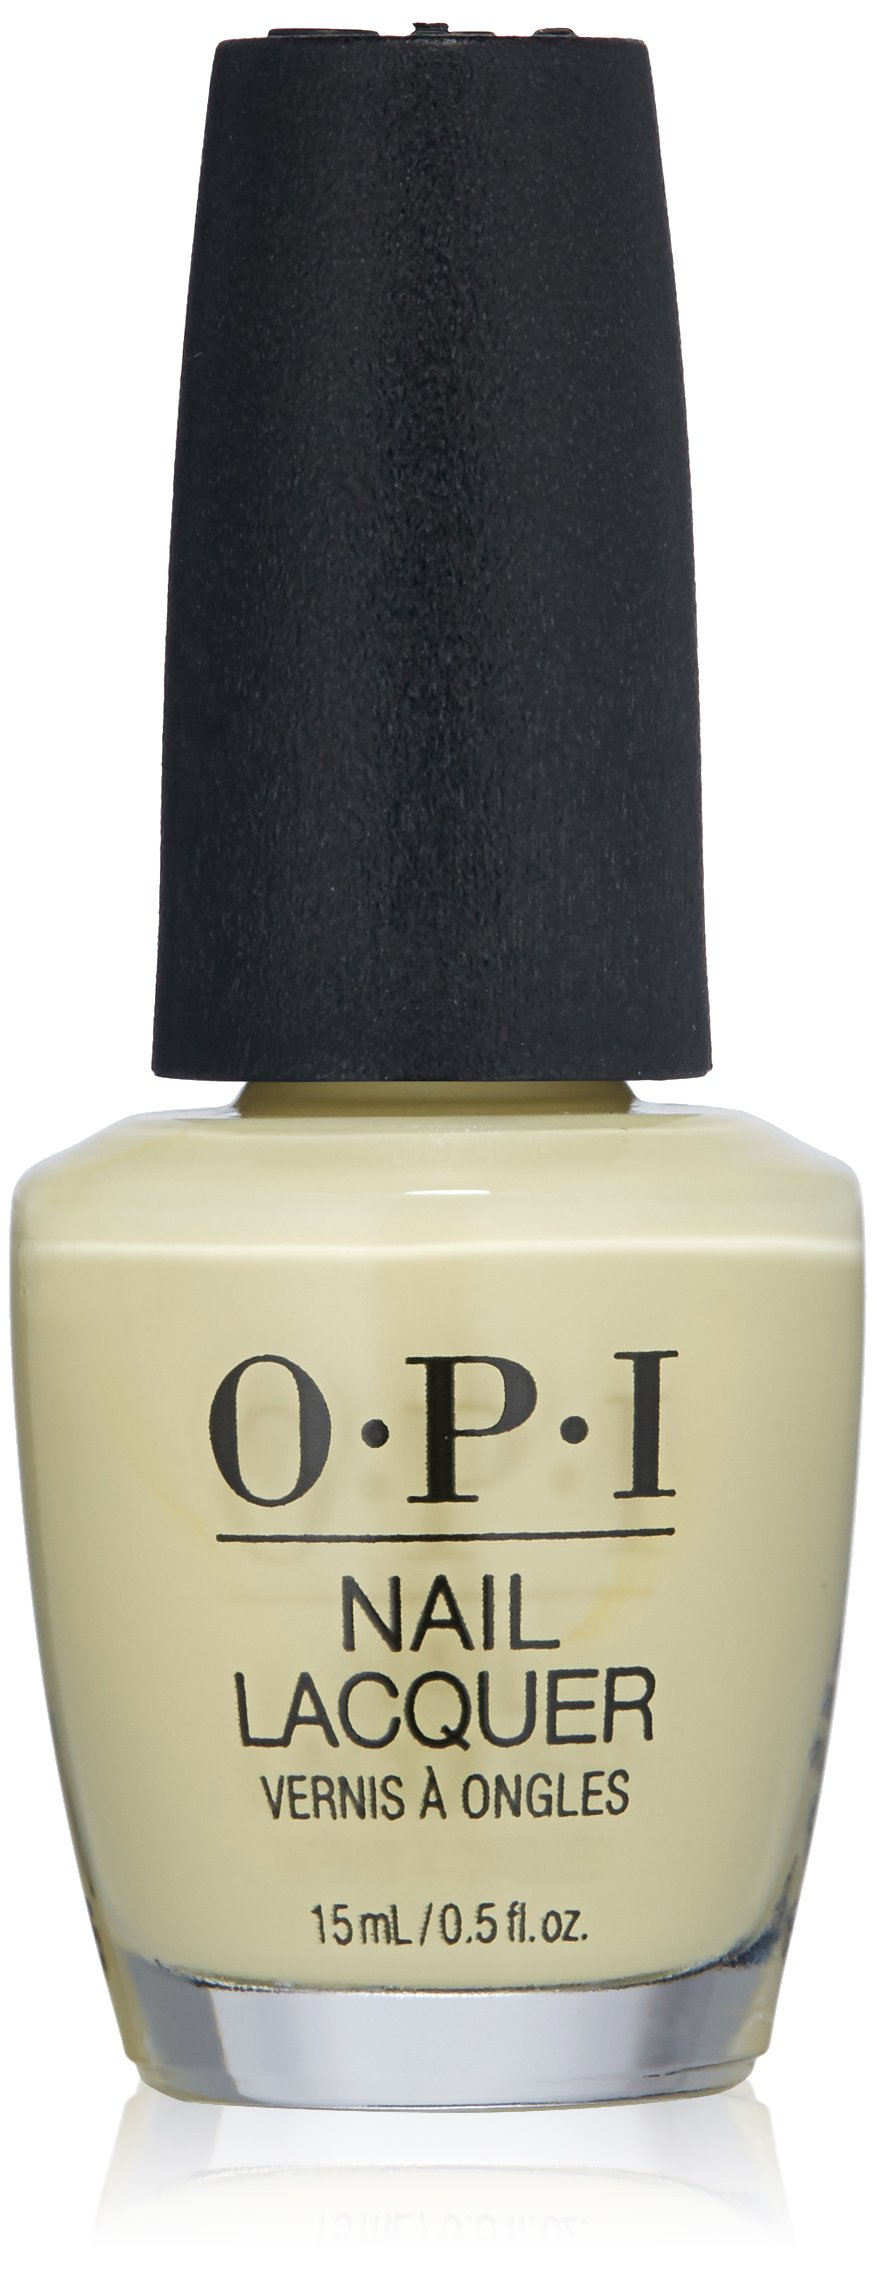 OPI Nail Lacquer, Meet a Boy Cute As Can Be by OPI